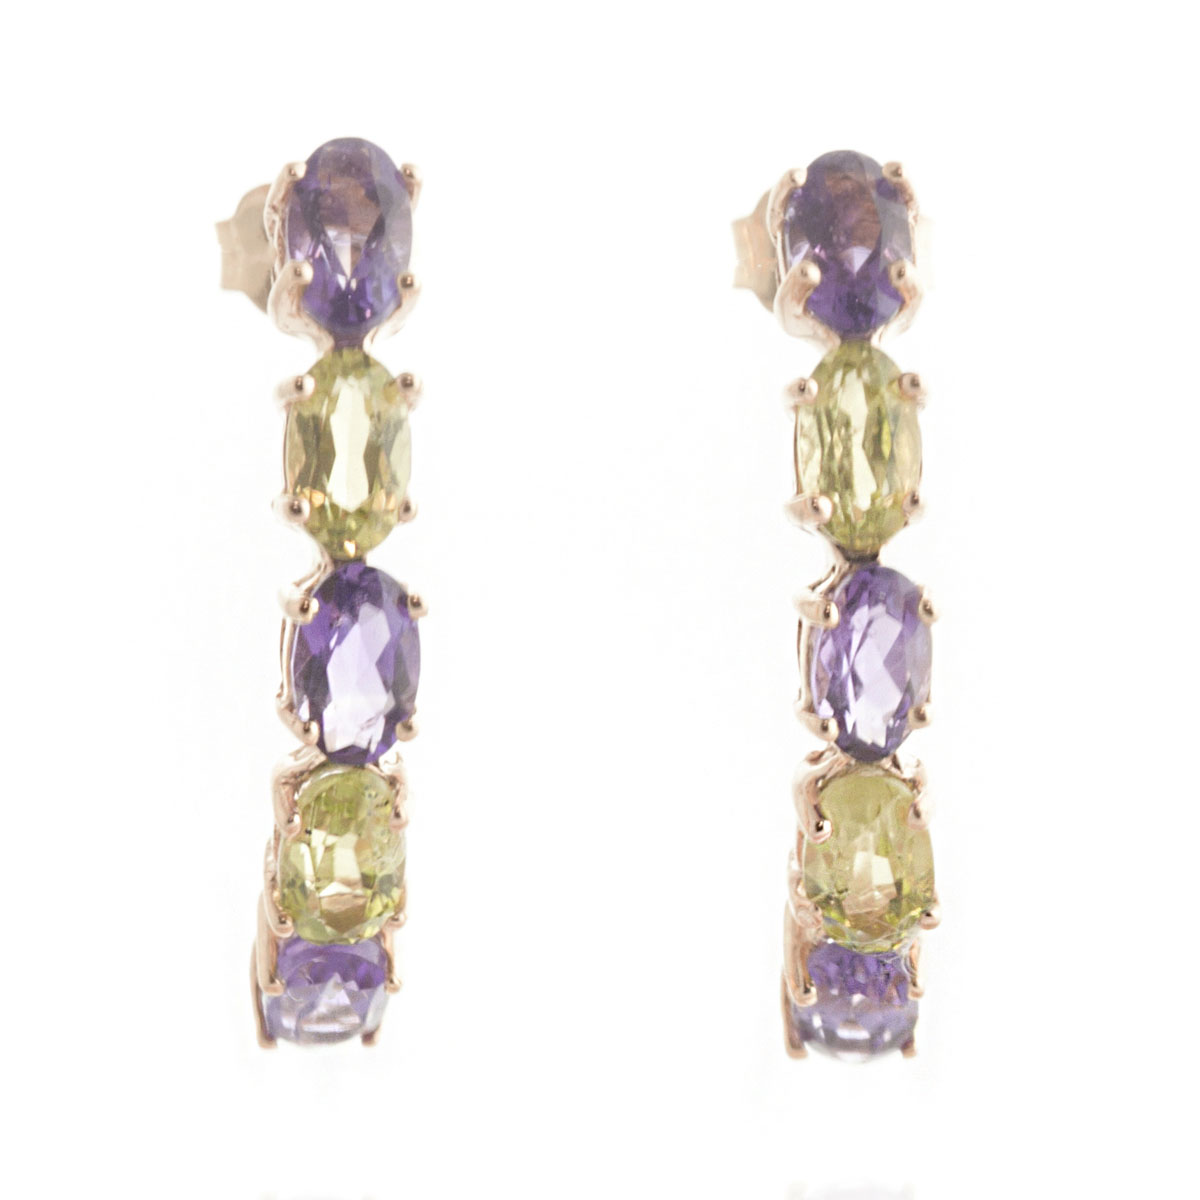 Amethyst & Peridot Linear Stud Earrings in 9ct Rose Gold